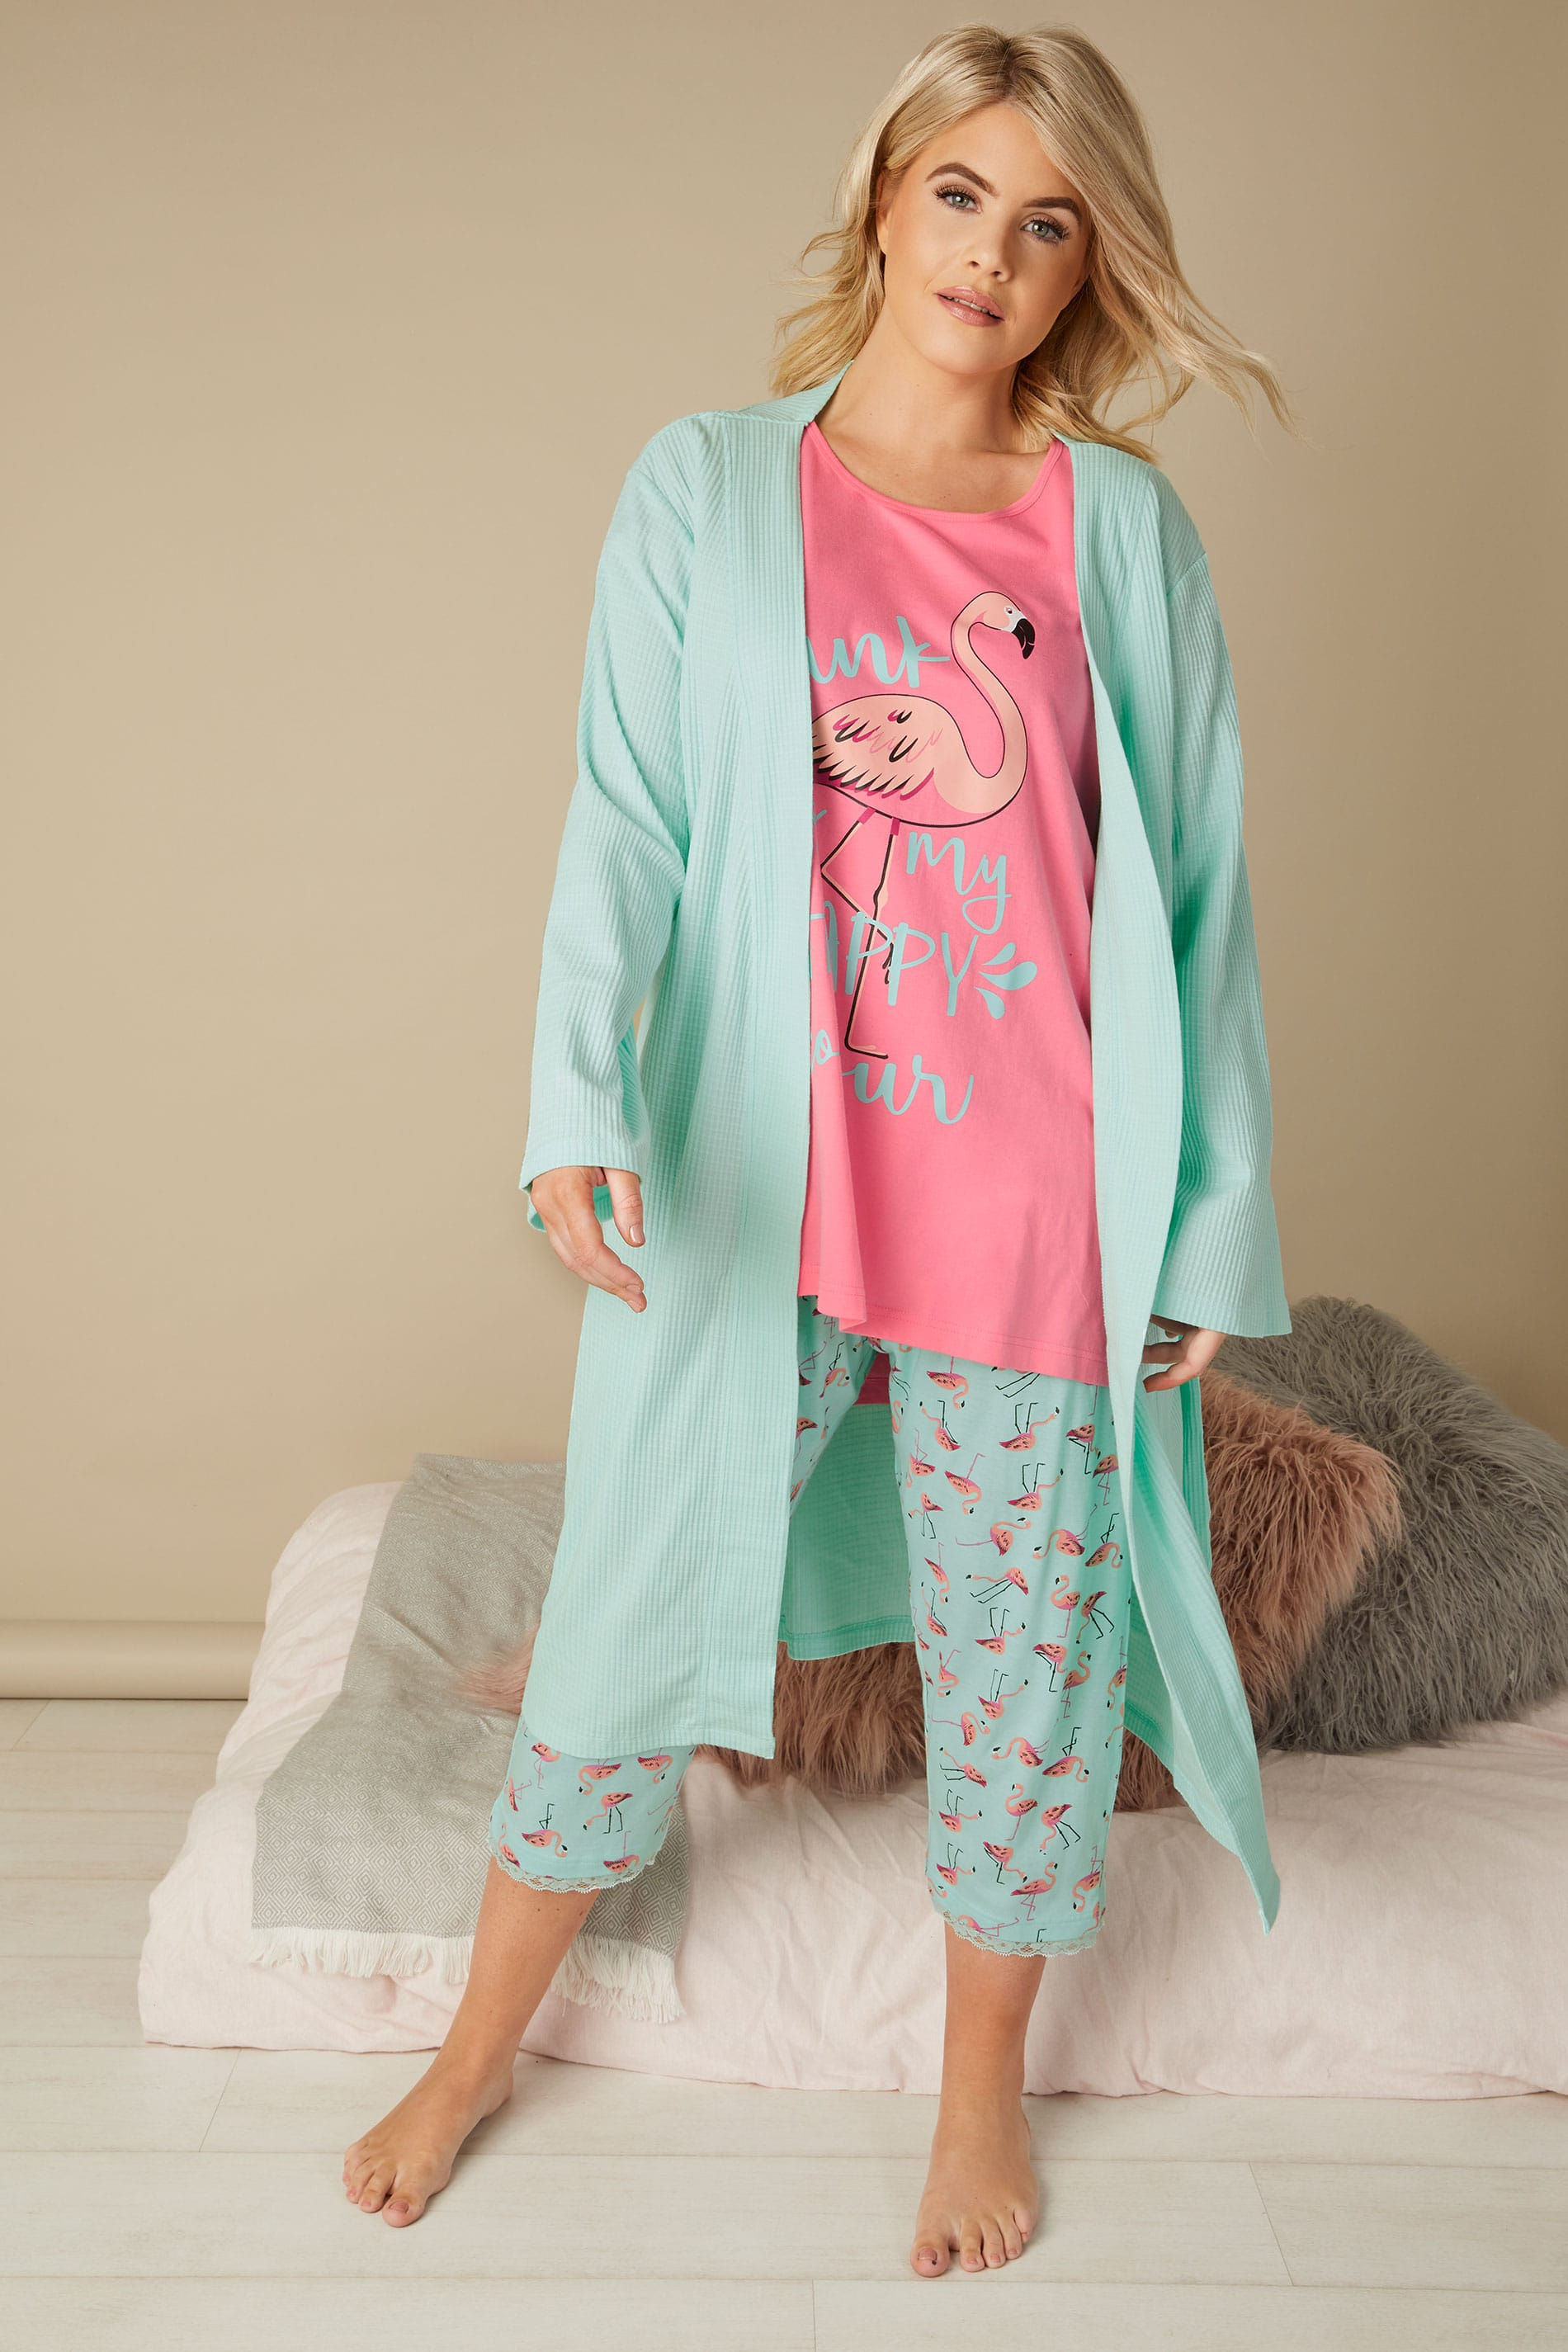 pinkes flamingo pyjama set mit blauen spruch capri hose in gro en gr en 44 bis 64. Black Bedroom Furniture Sets. Home Design Ideas